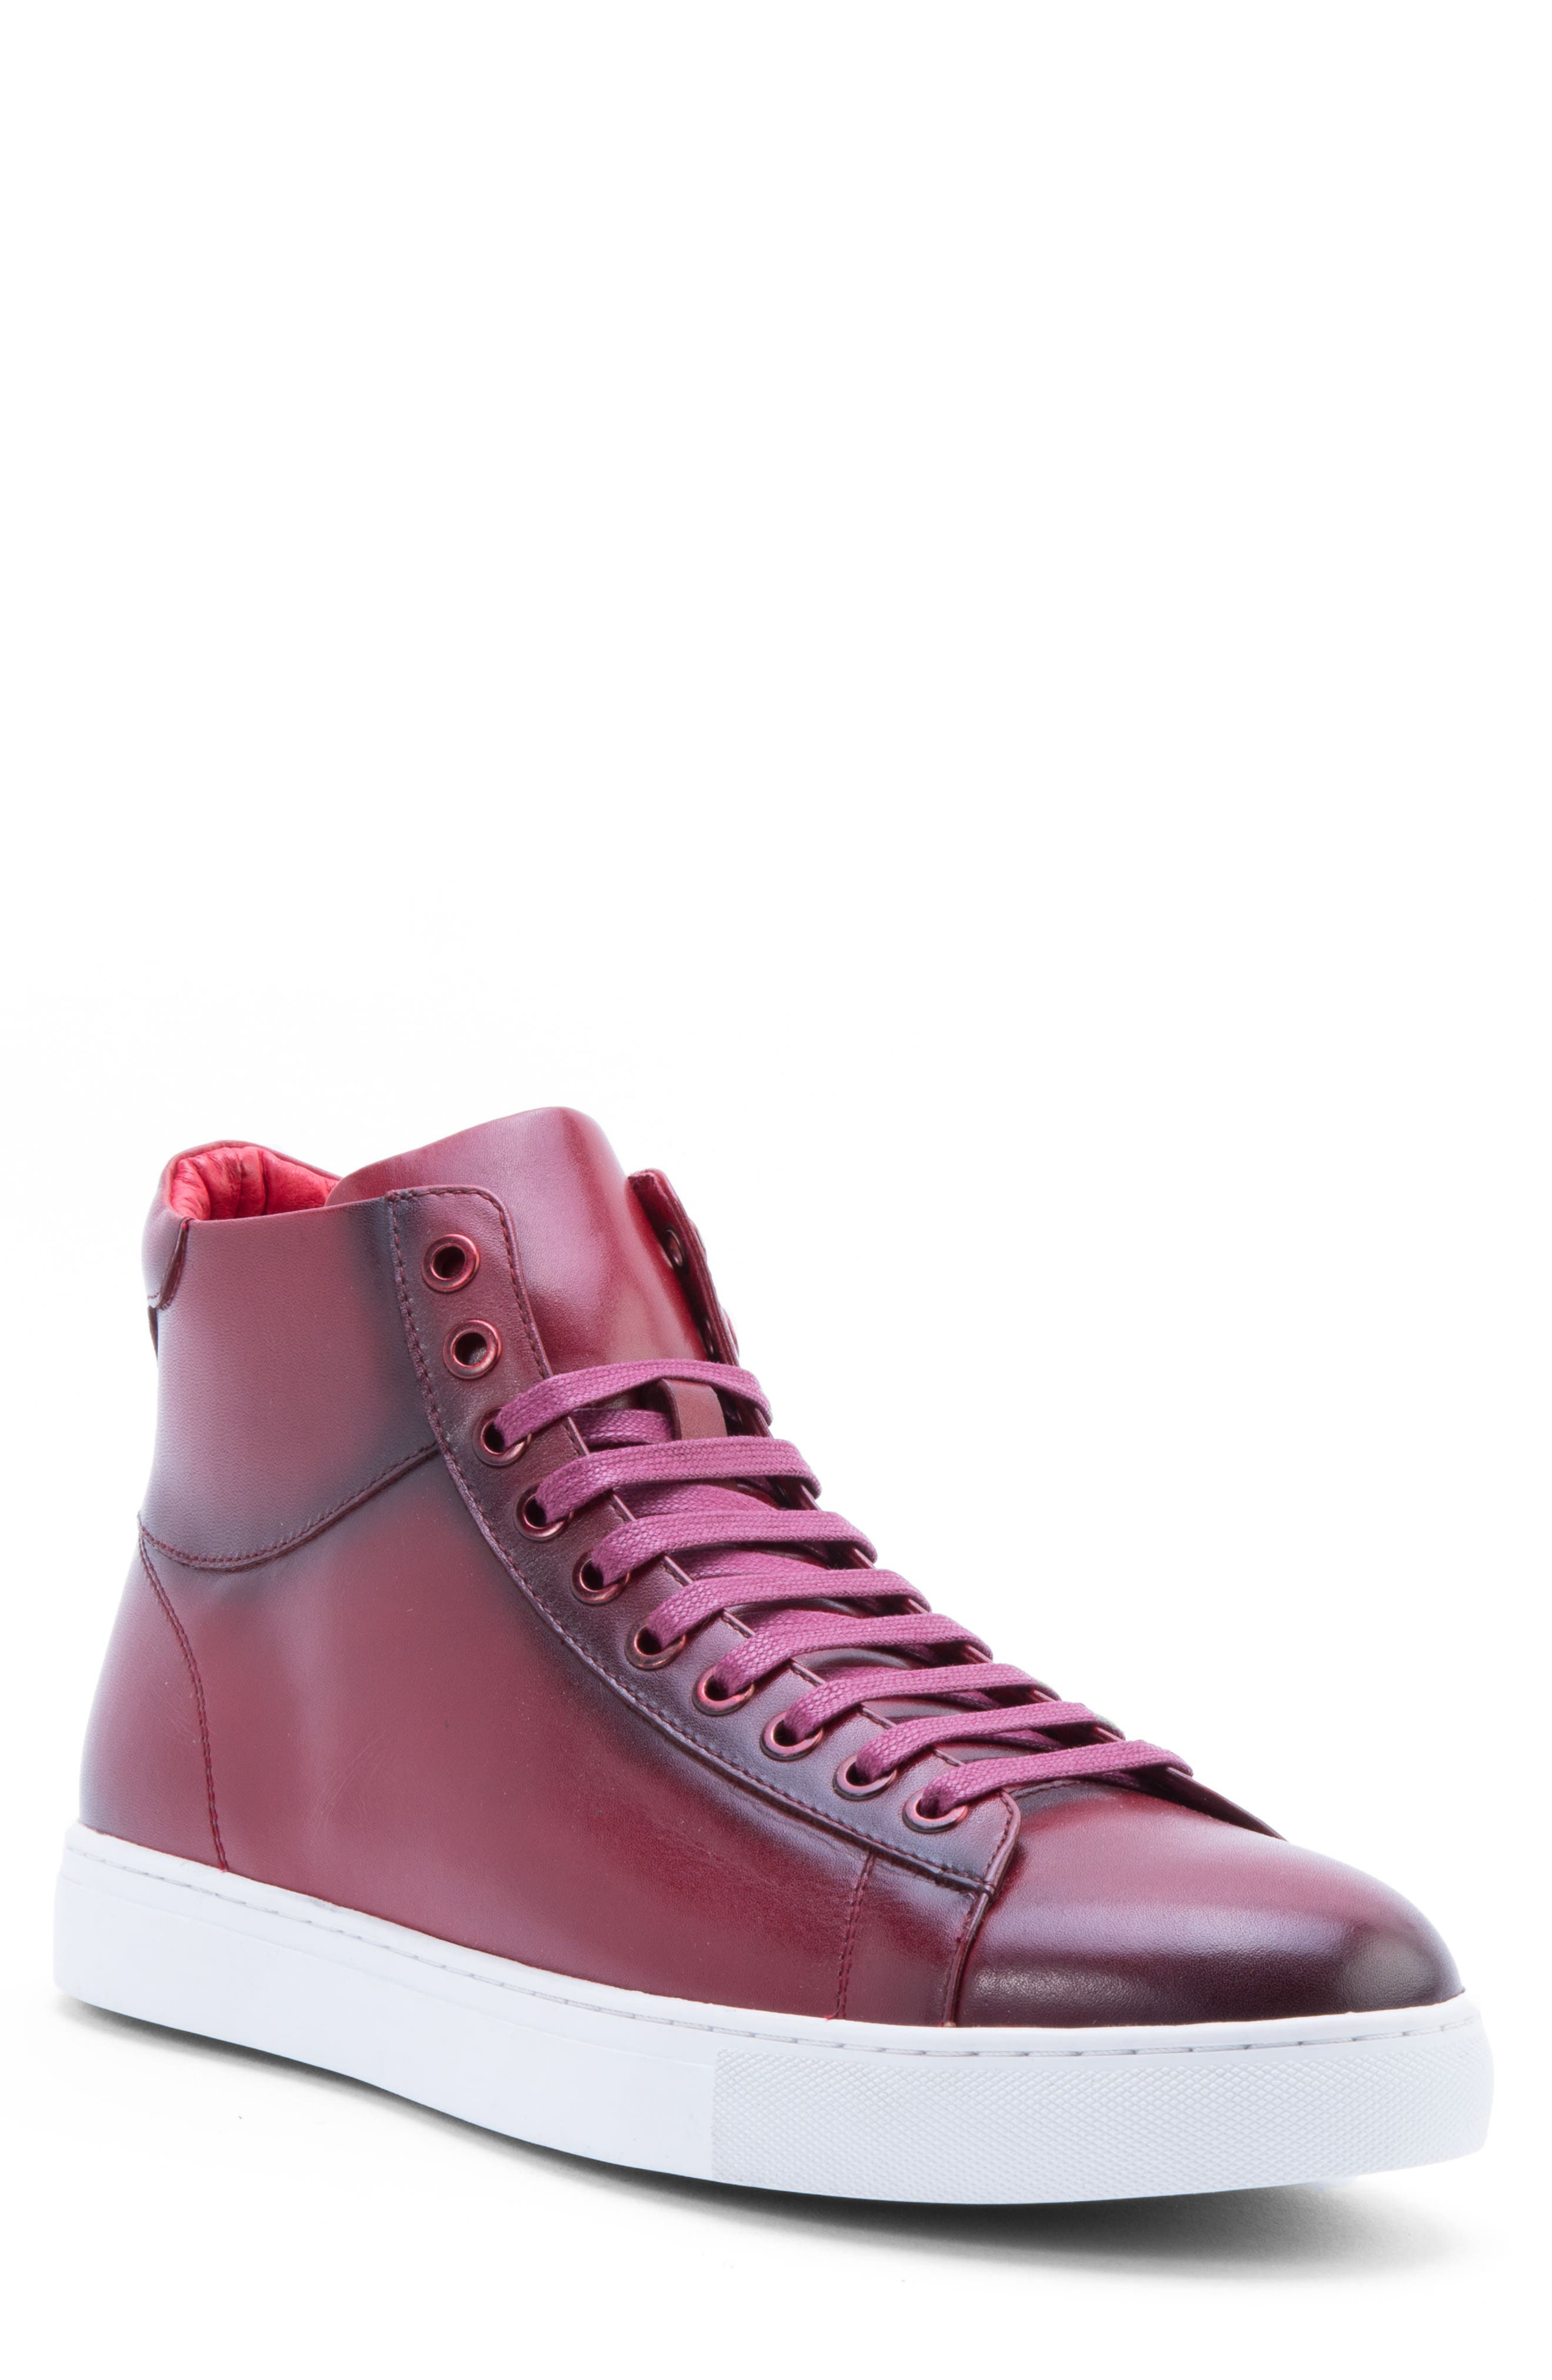 Spinback High Top Sneaker,                             Main thumbnail 1, color,                             RED LEATHER